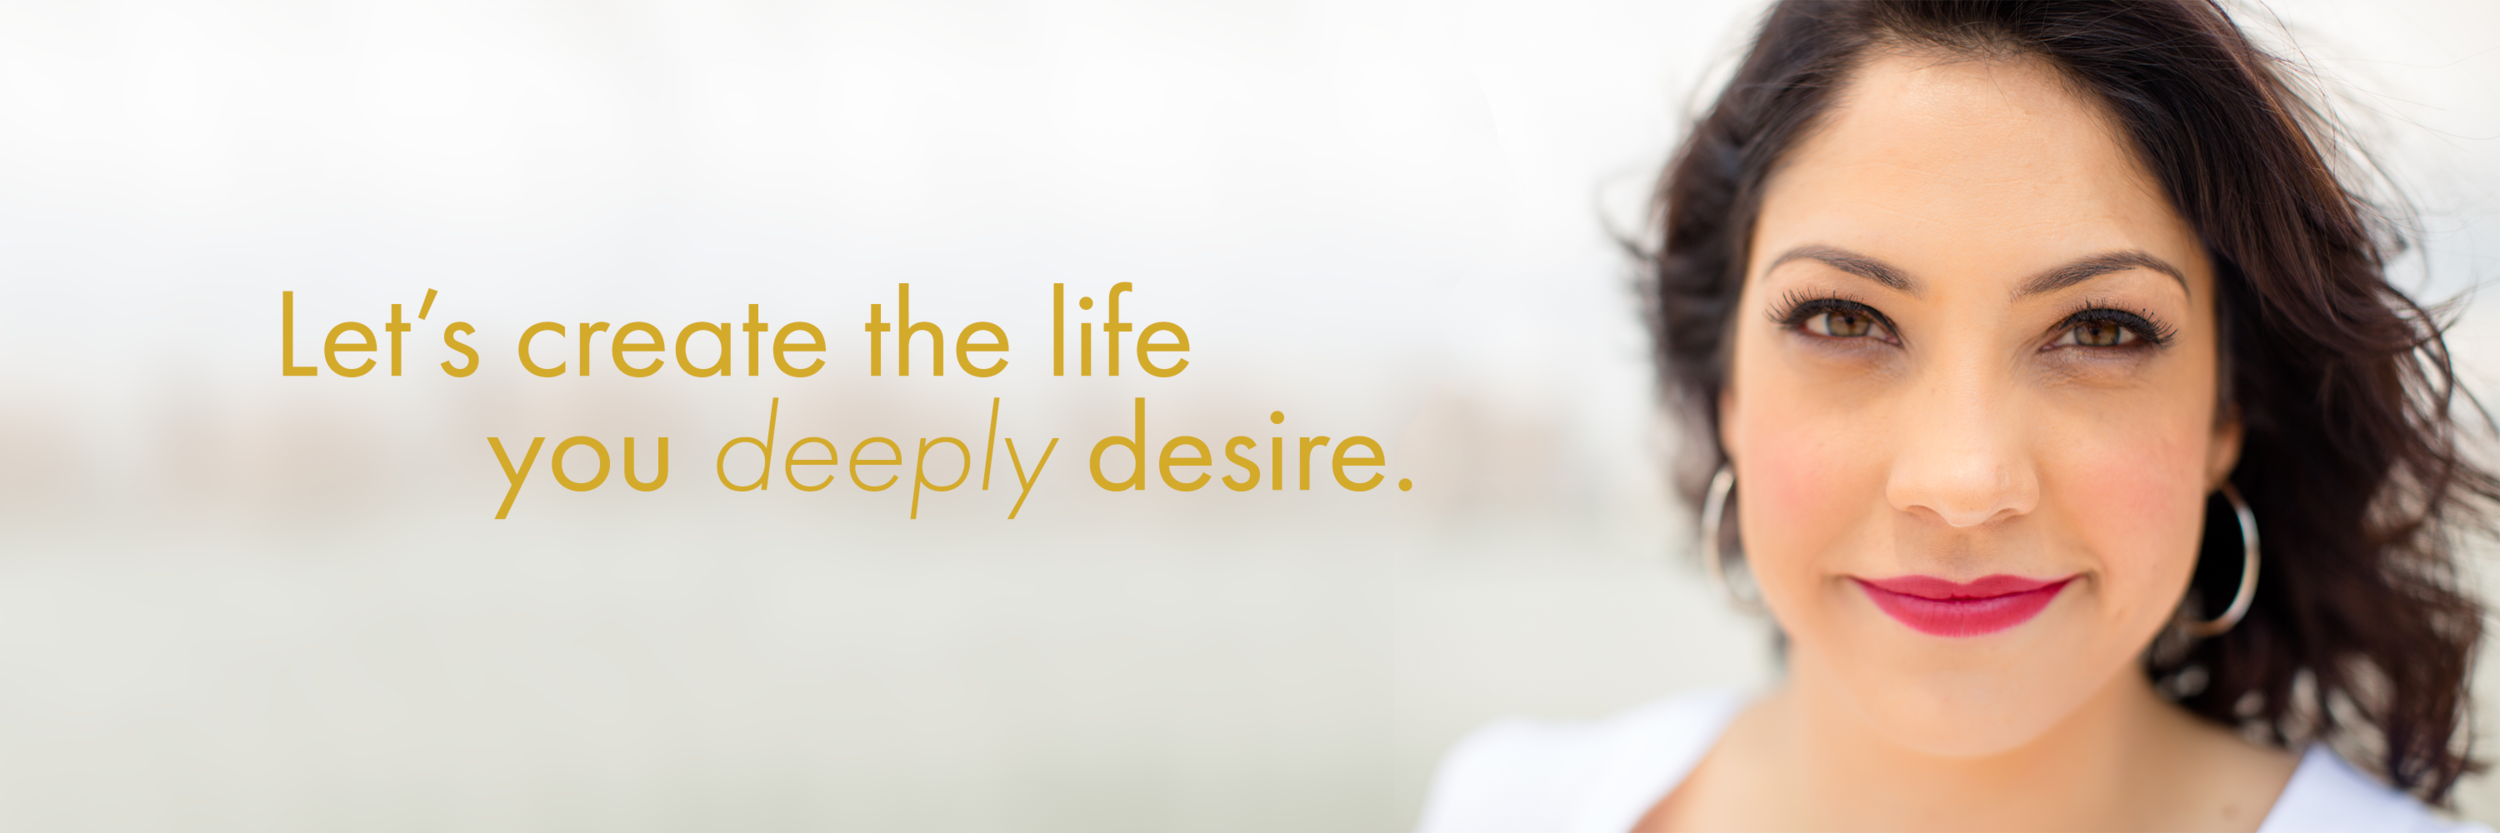 Lets create the life you deeply desire.png